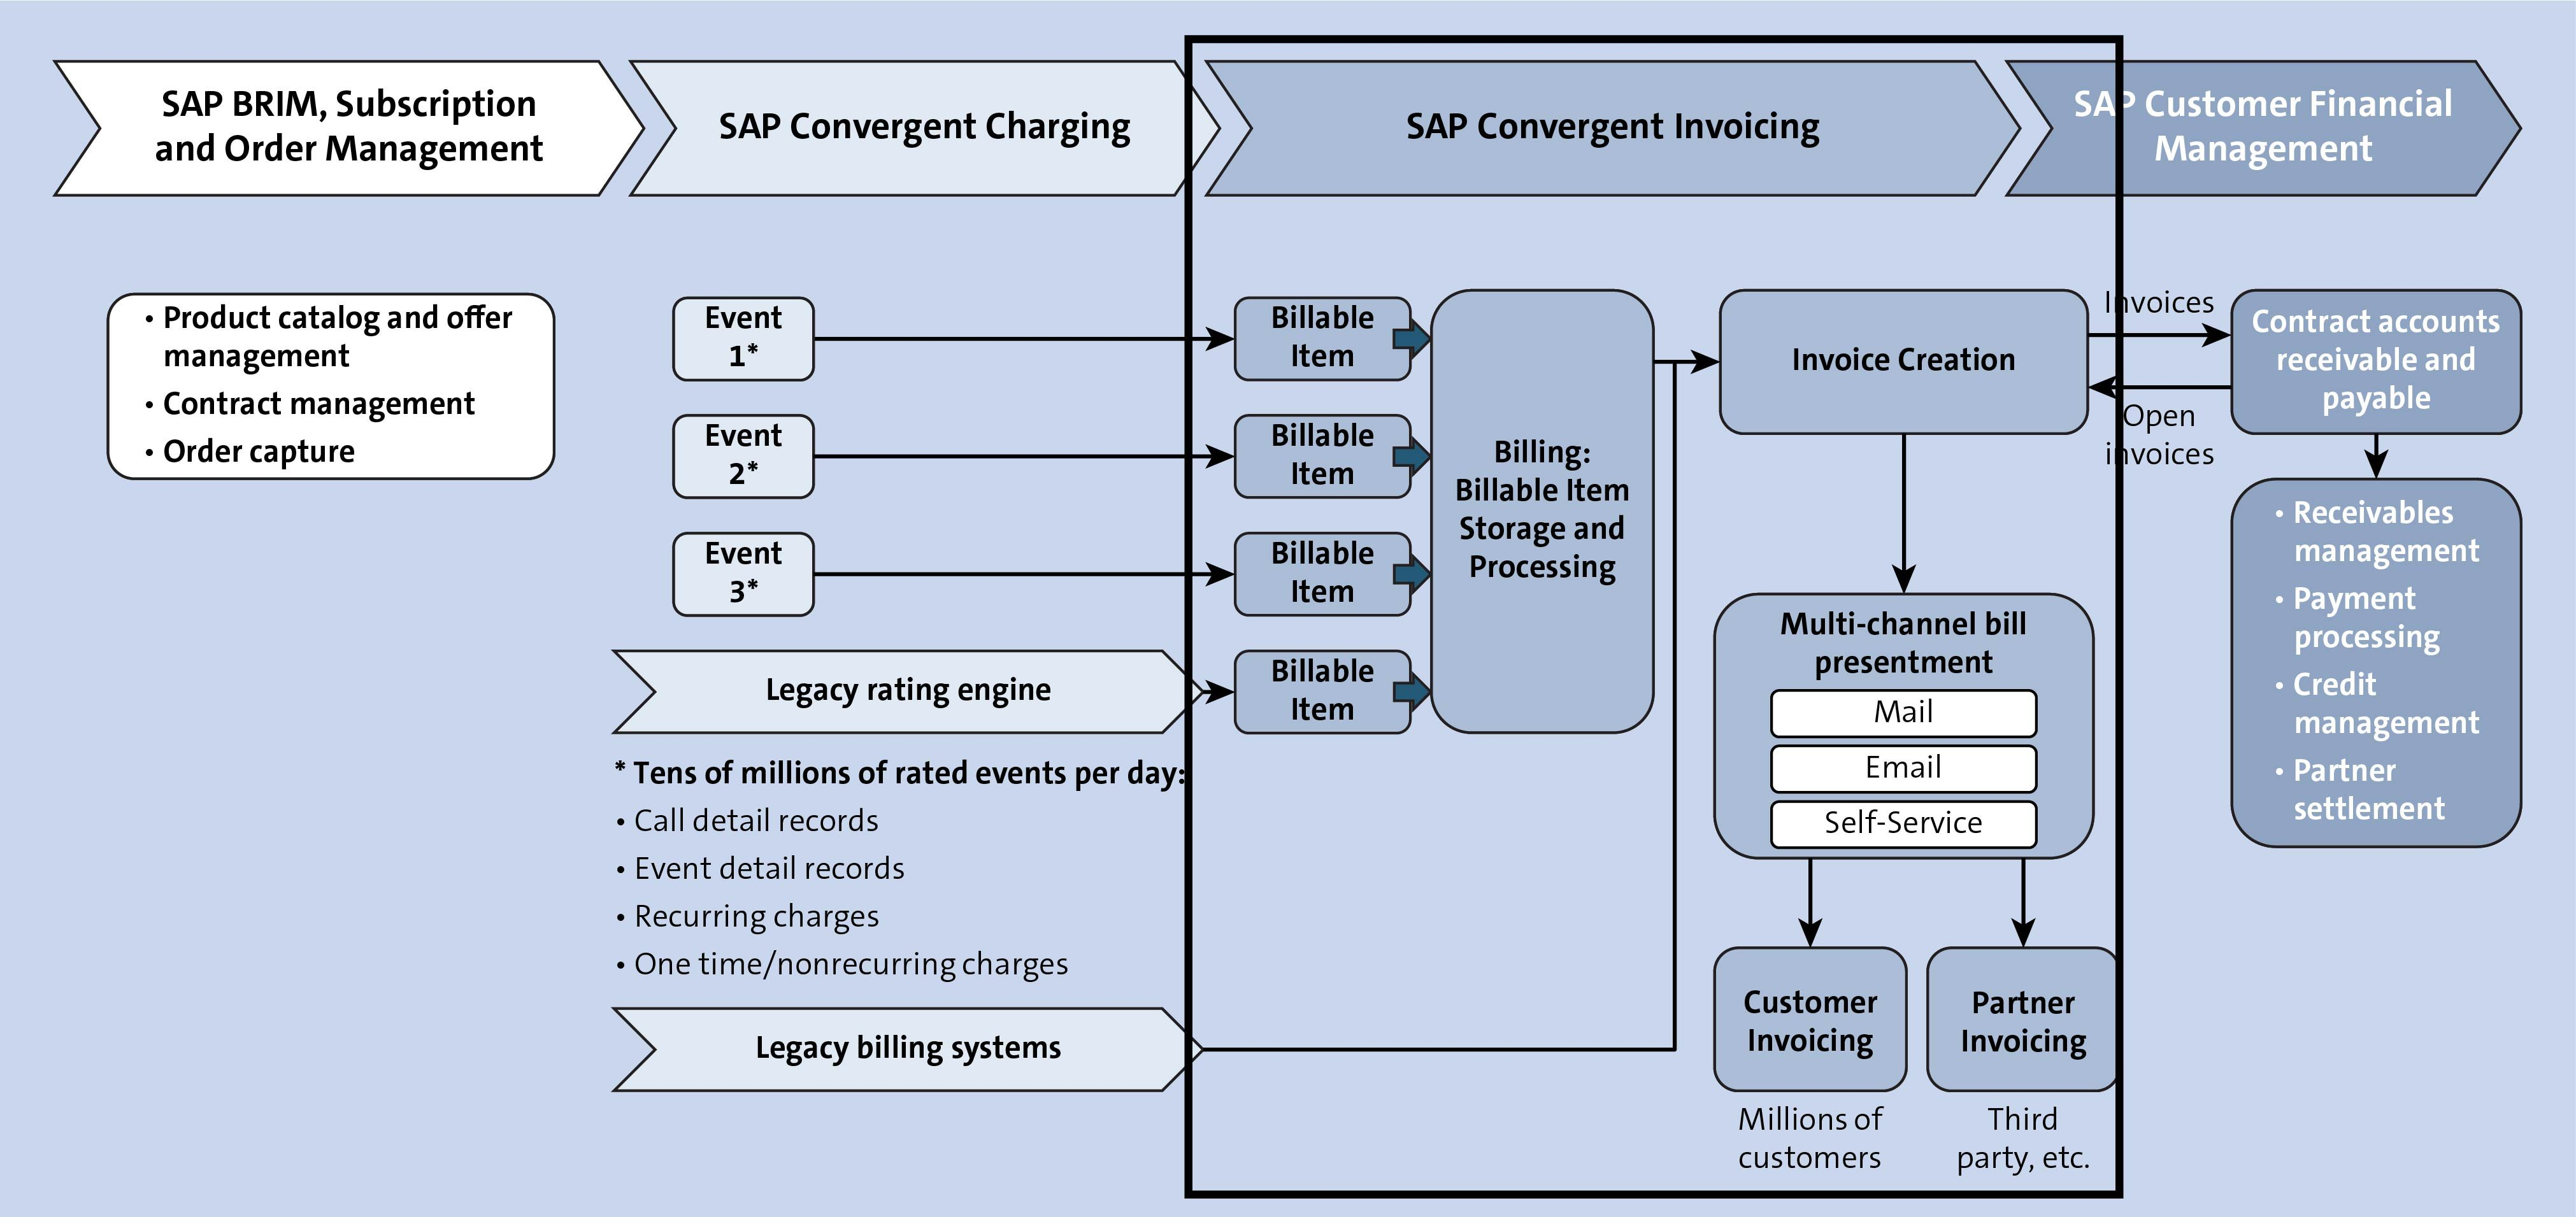 SAP Convergent Invoicing